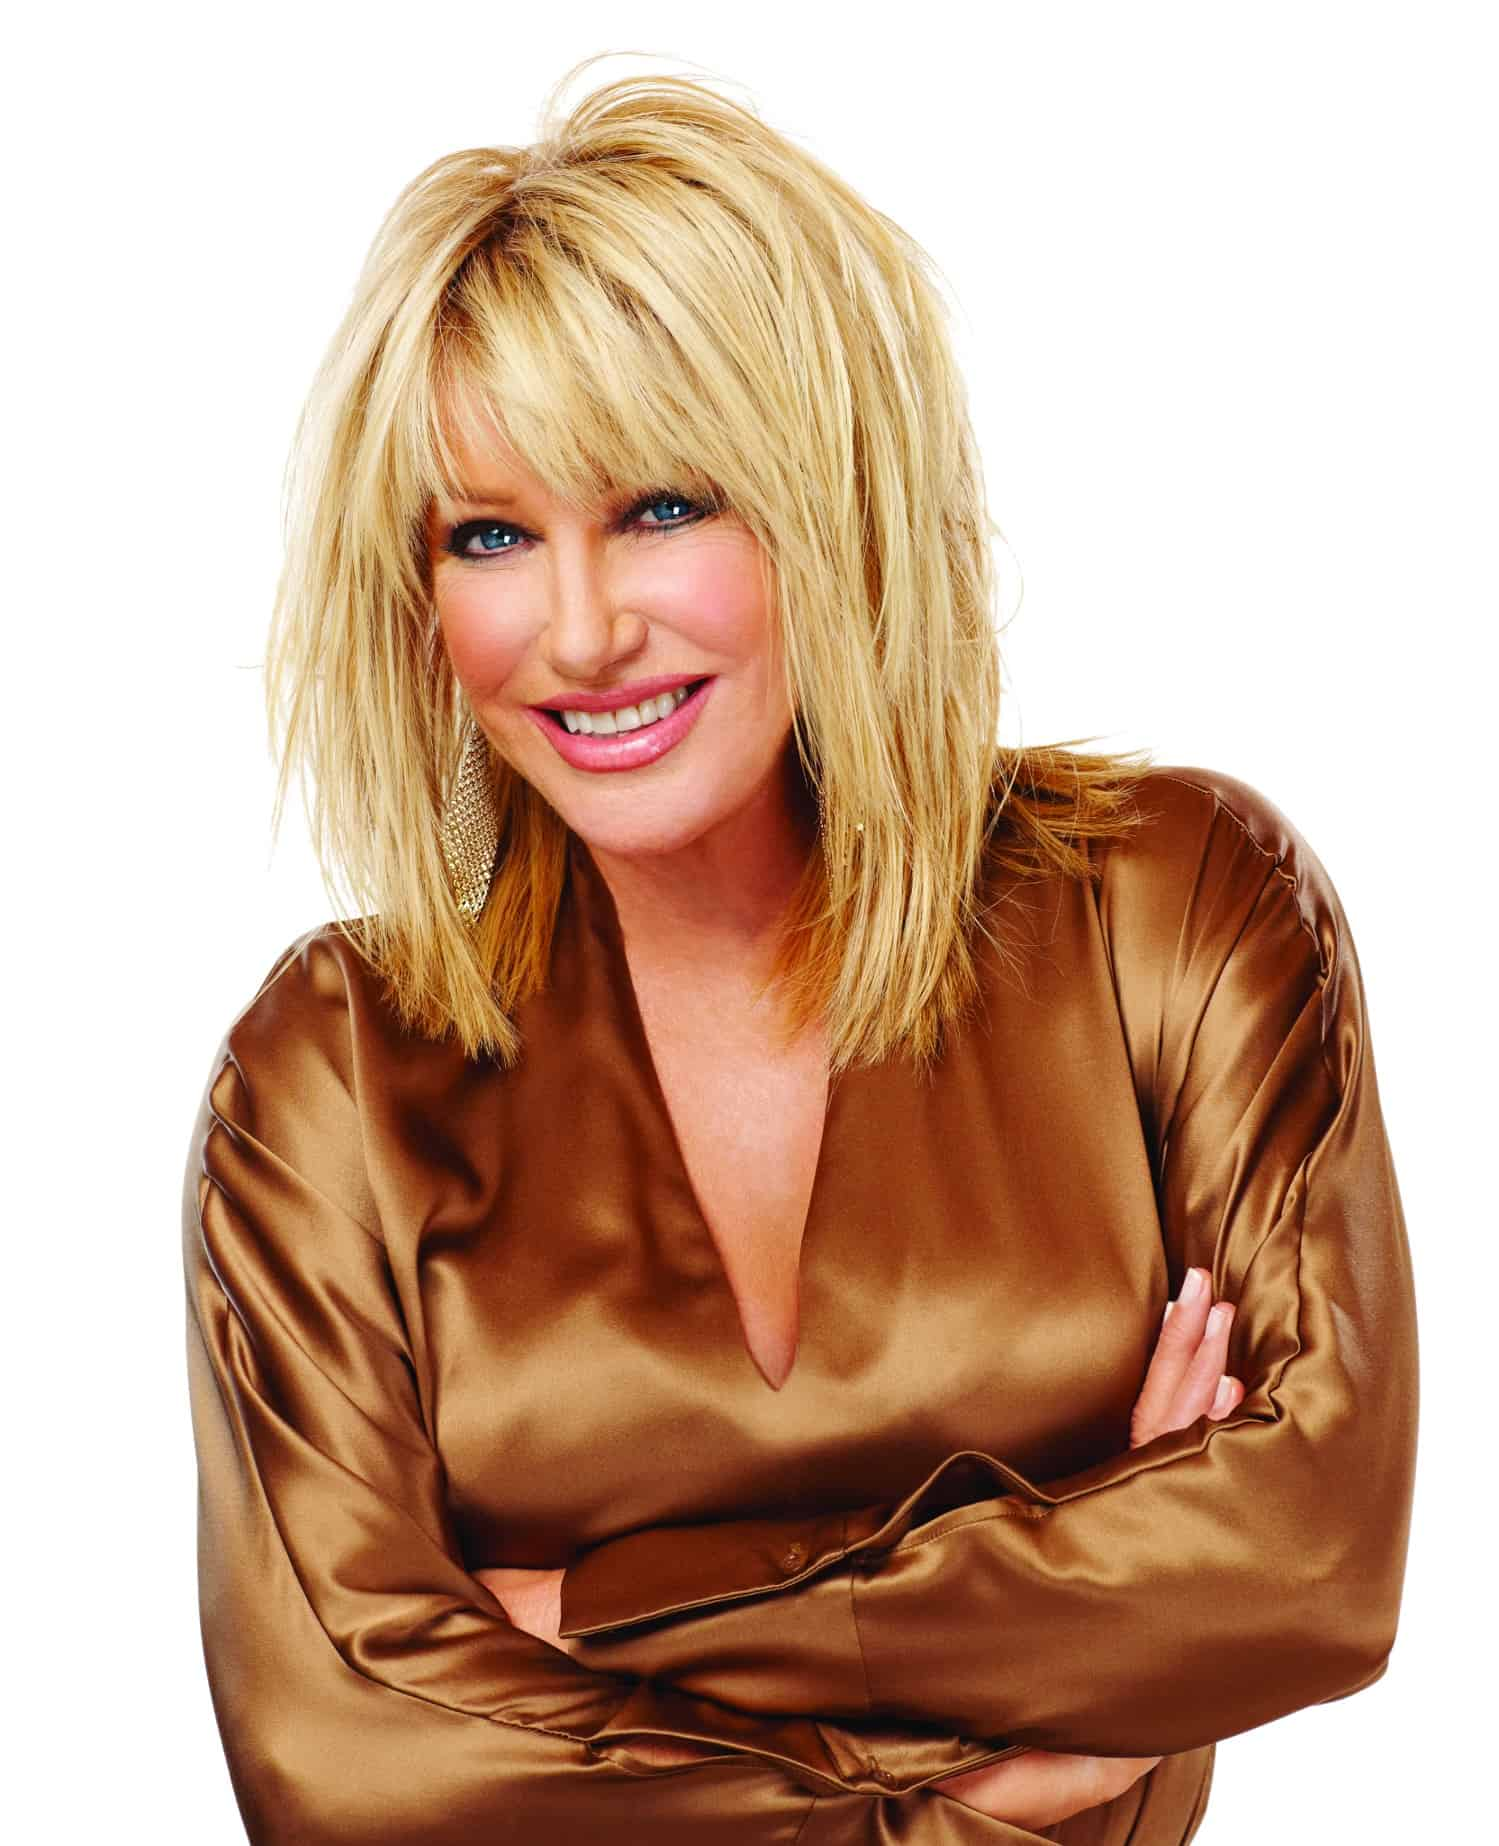 Stay Young at the Bass: An Evening with Suzanne Somers